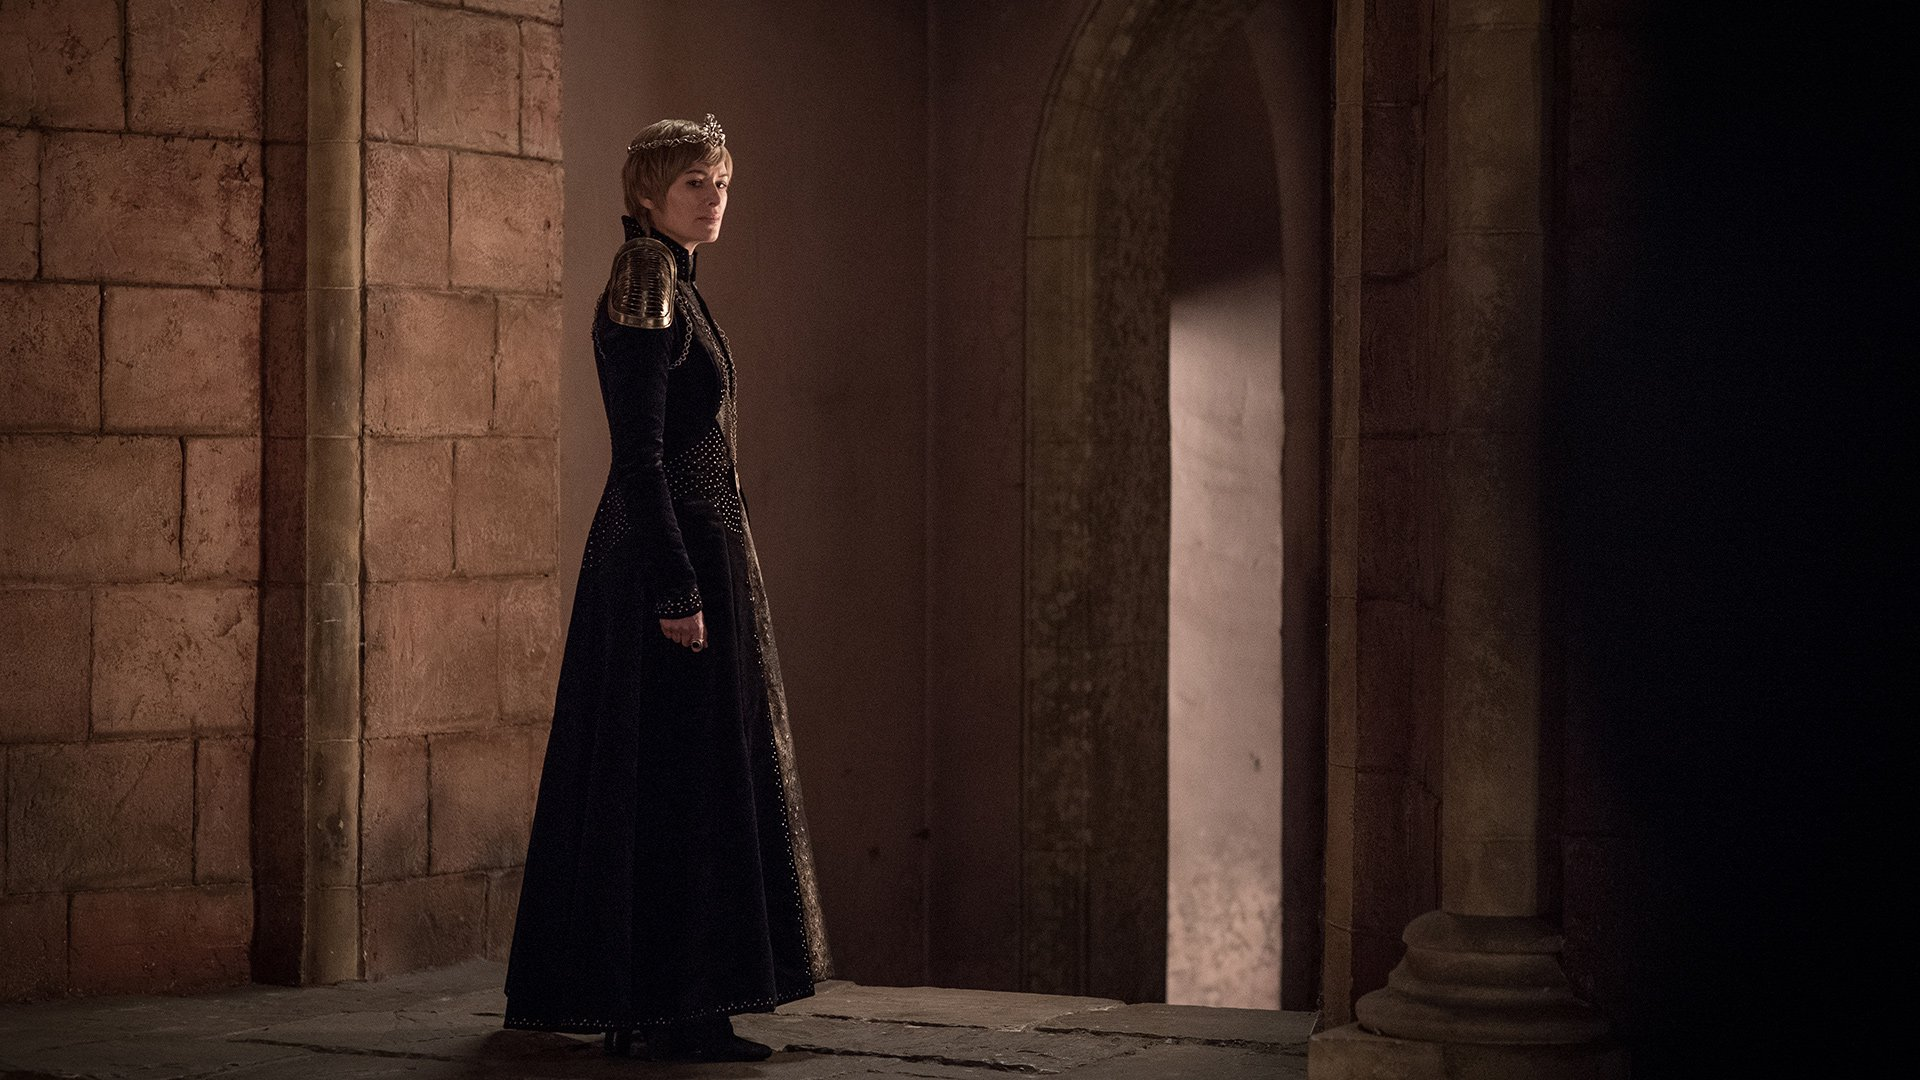 Is Cersei Lannister pregnant in new final season still from Game of Thrones?